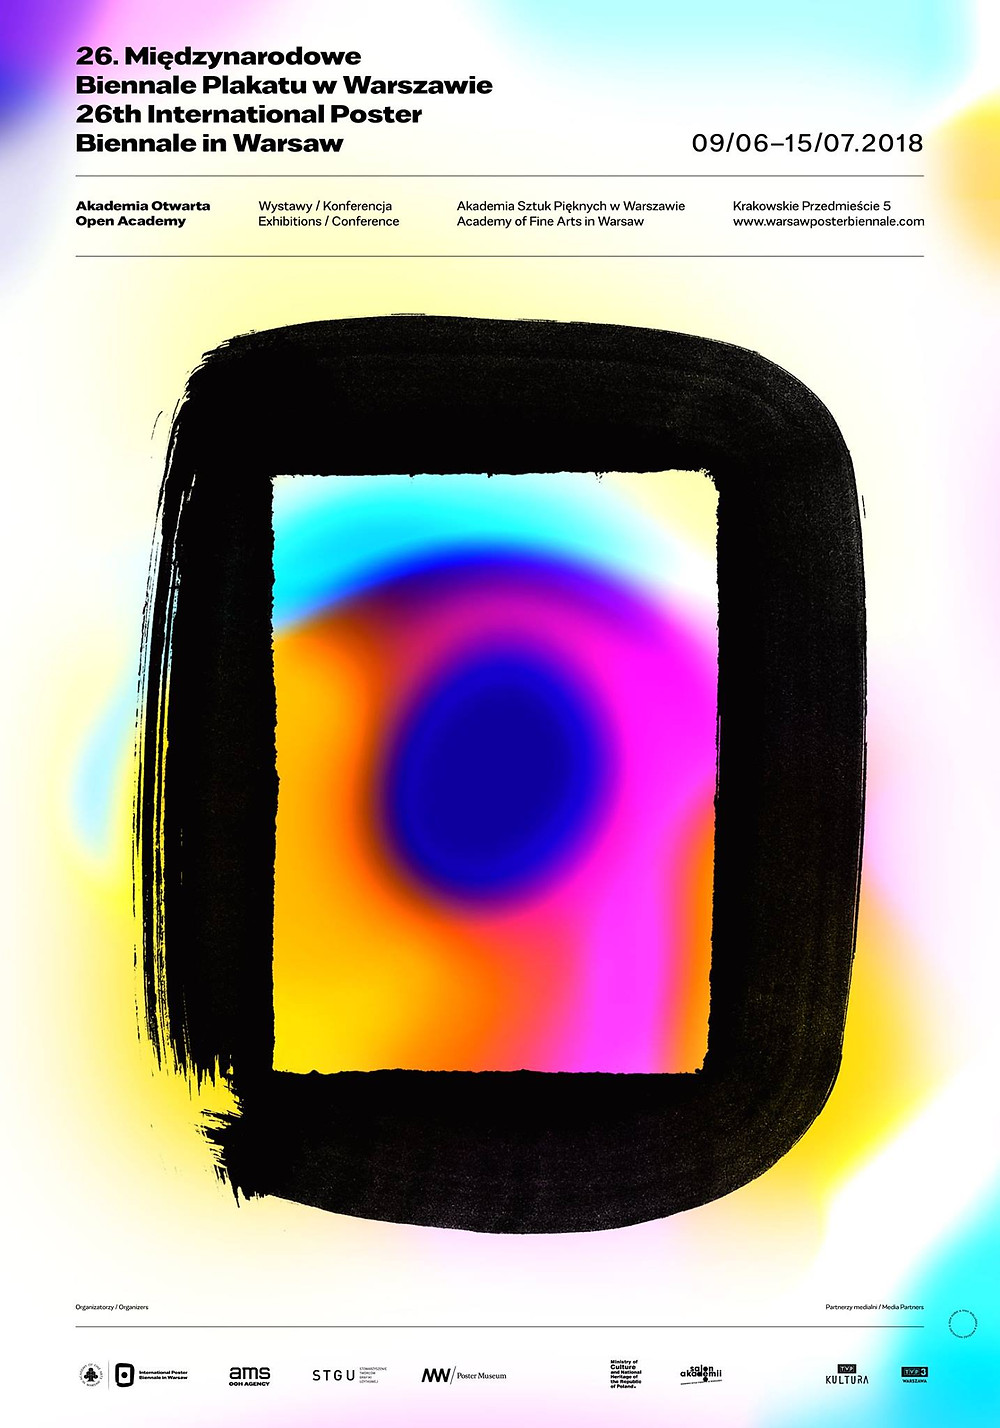 Official Poster for the 26th International Poster Biennale Warsaw